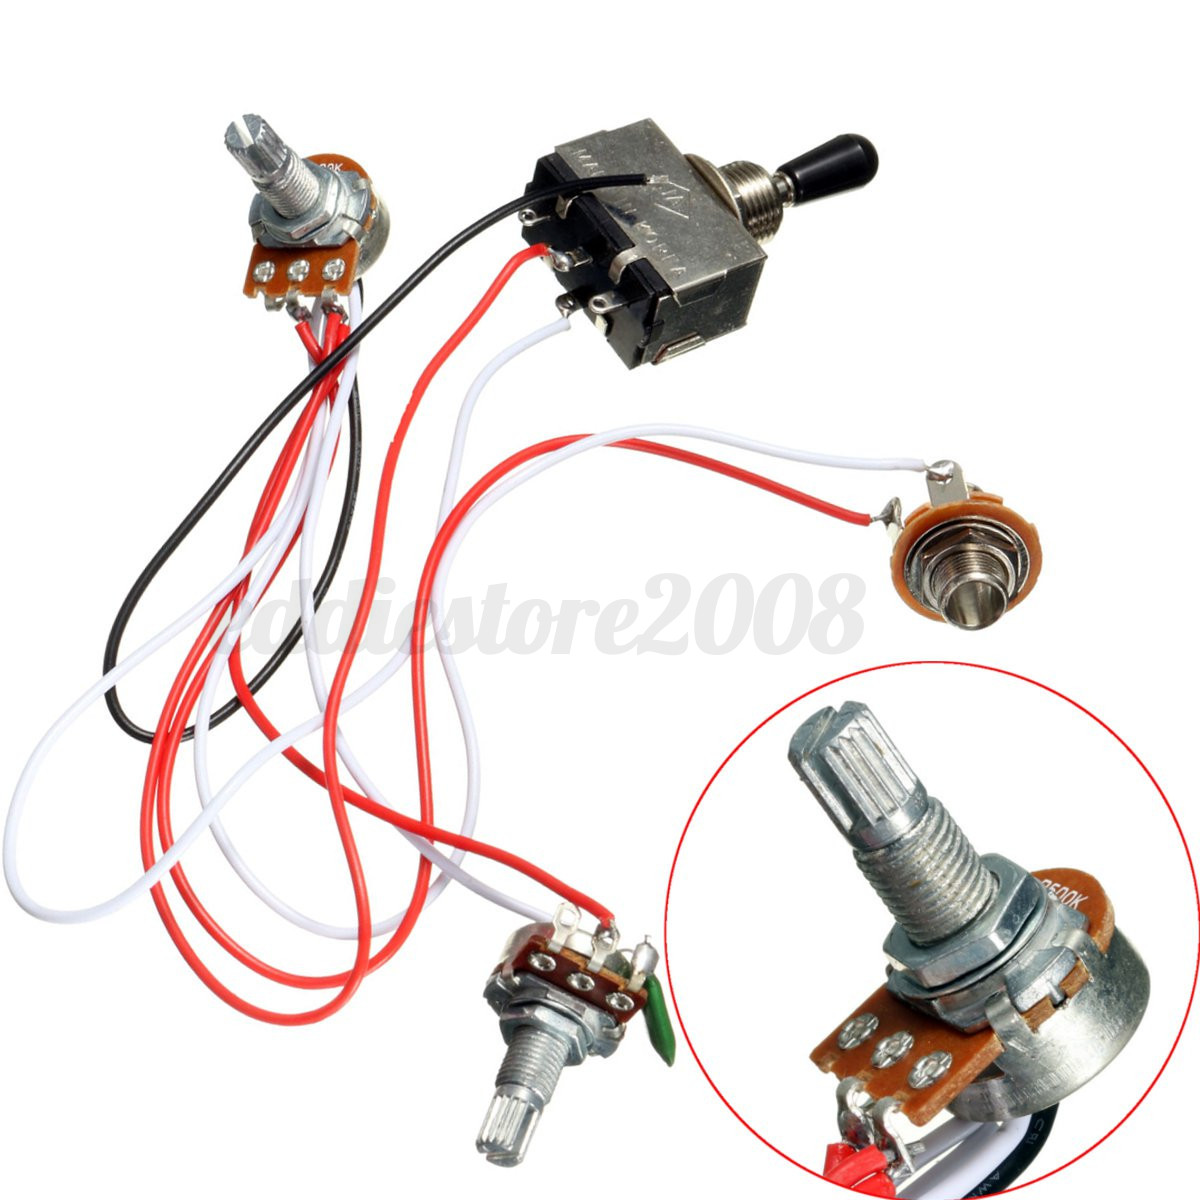 3 way electric jayco tent trailer wiring diagram guitar toggle switch harness kit 1